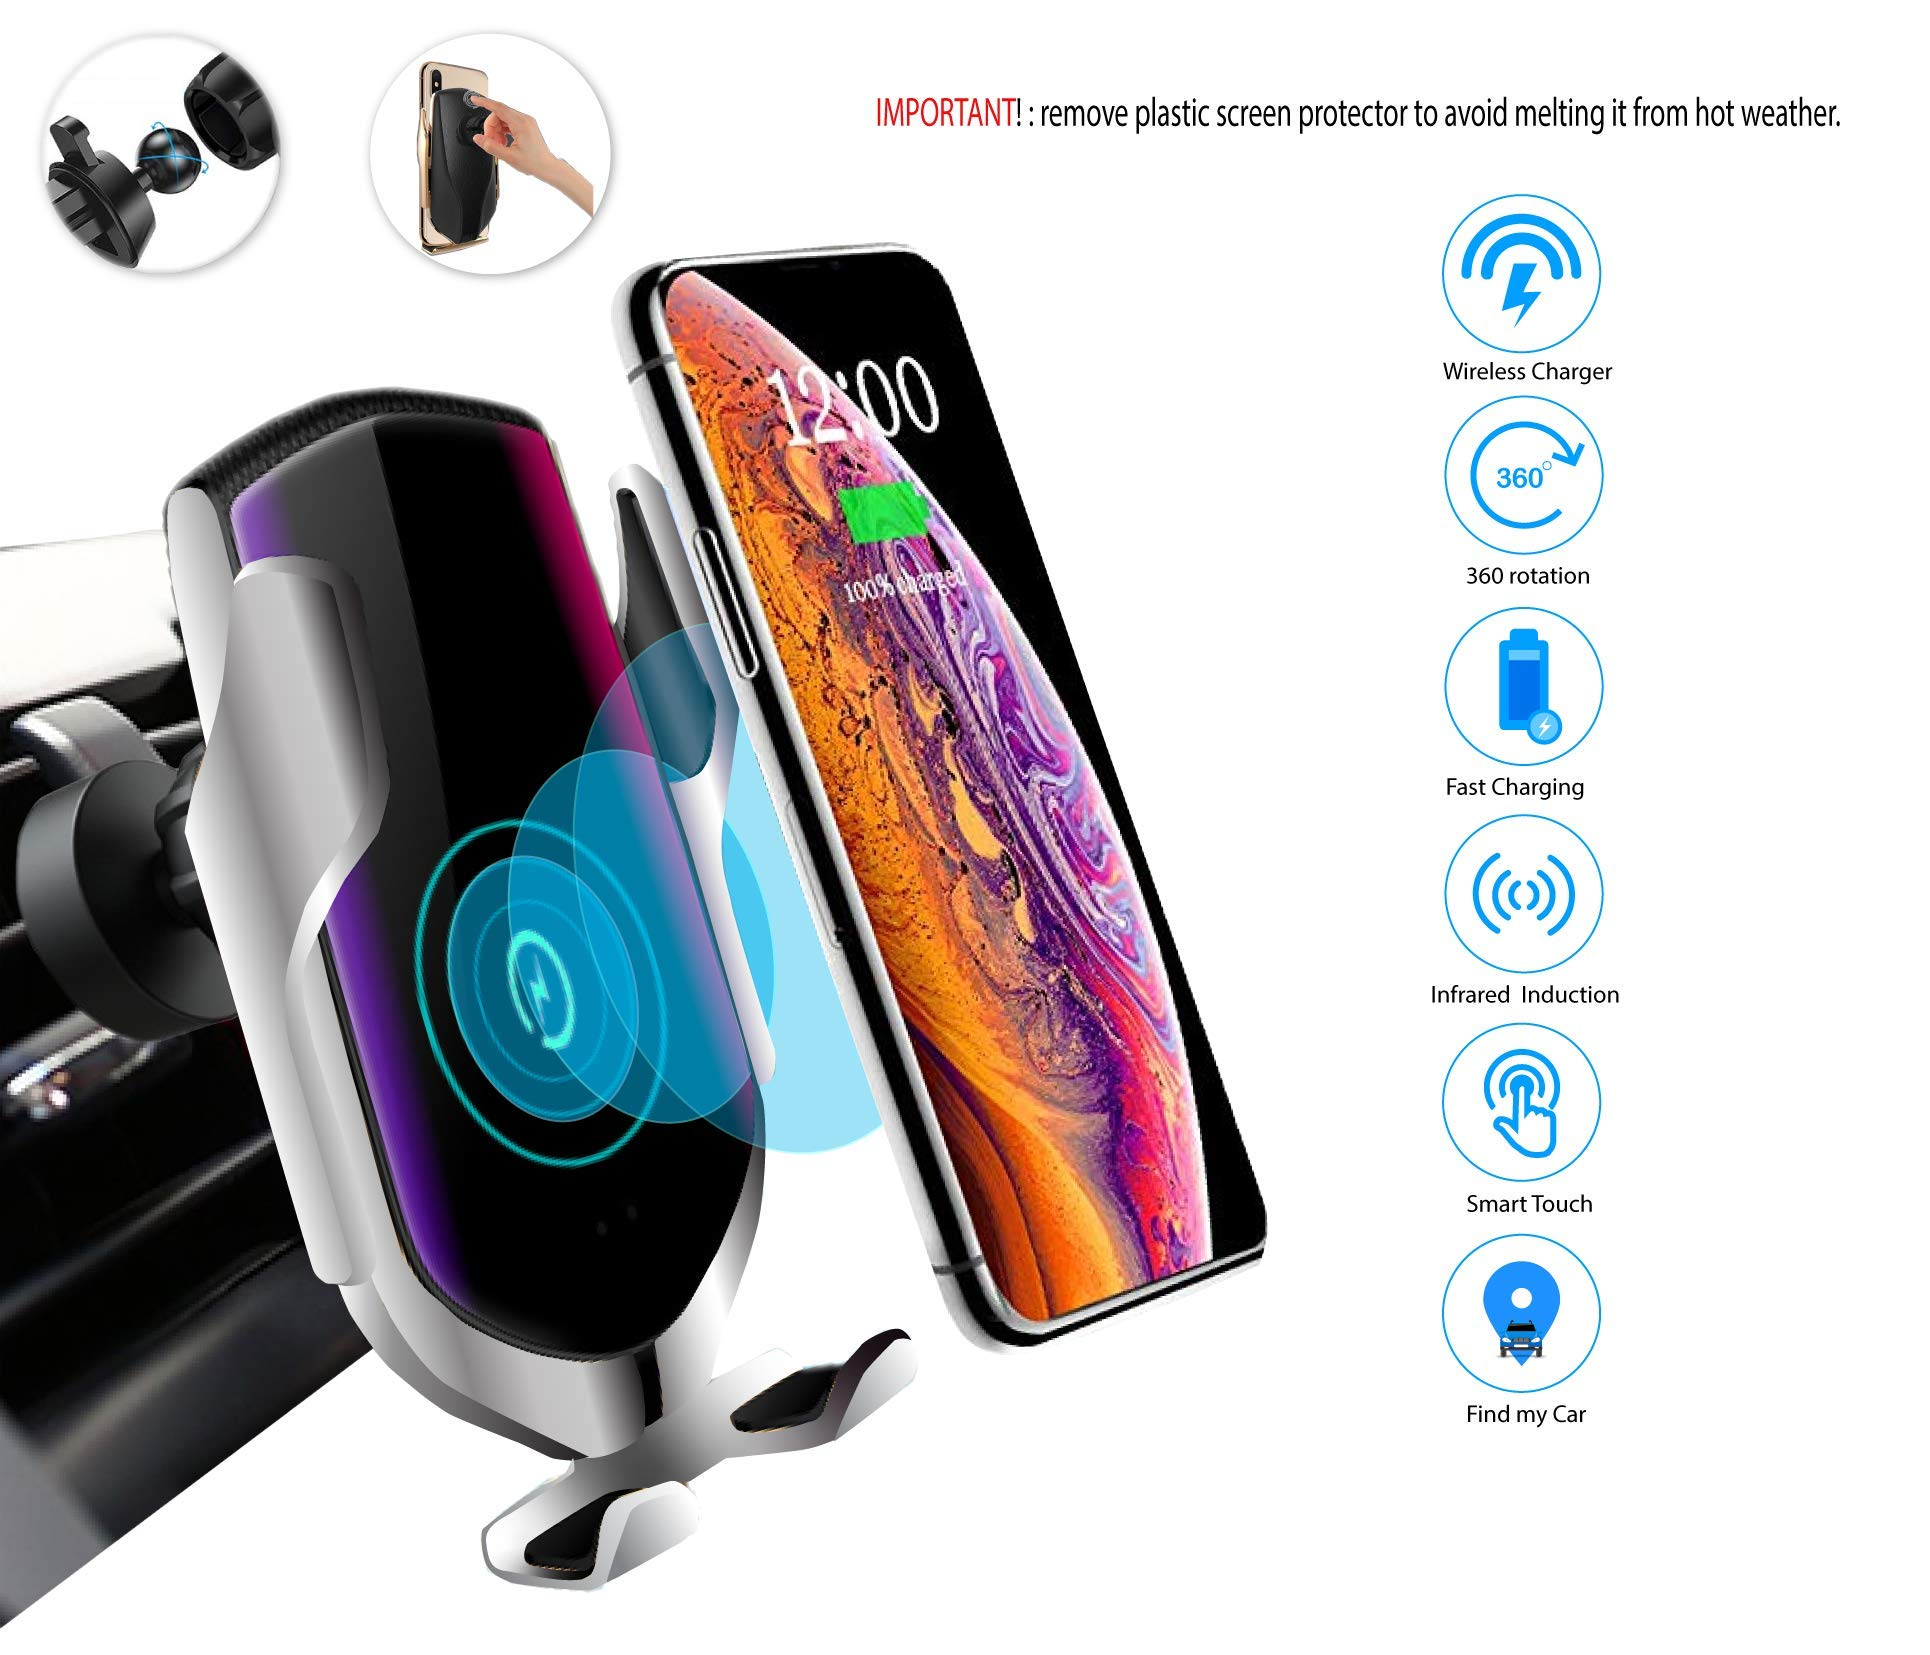 Nterprize Wireless Car Charger,IR Intelligent Automatic Clamping Car Charger Mount Air Vent,10W Wireless Charger Compatible for iPhone Xs/Max/XR/8/8 Plus/Galaxy S9/S9+/S8/S8+/Note9/S7(Silver) by Nterprize